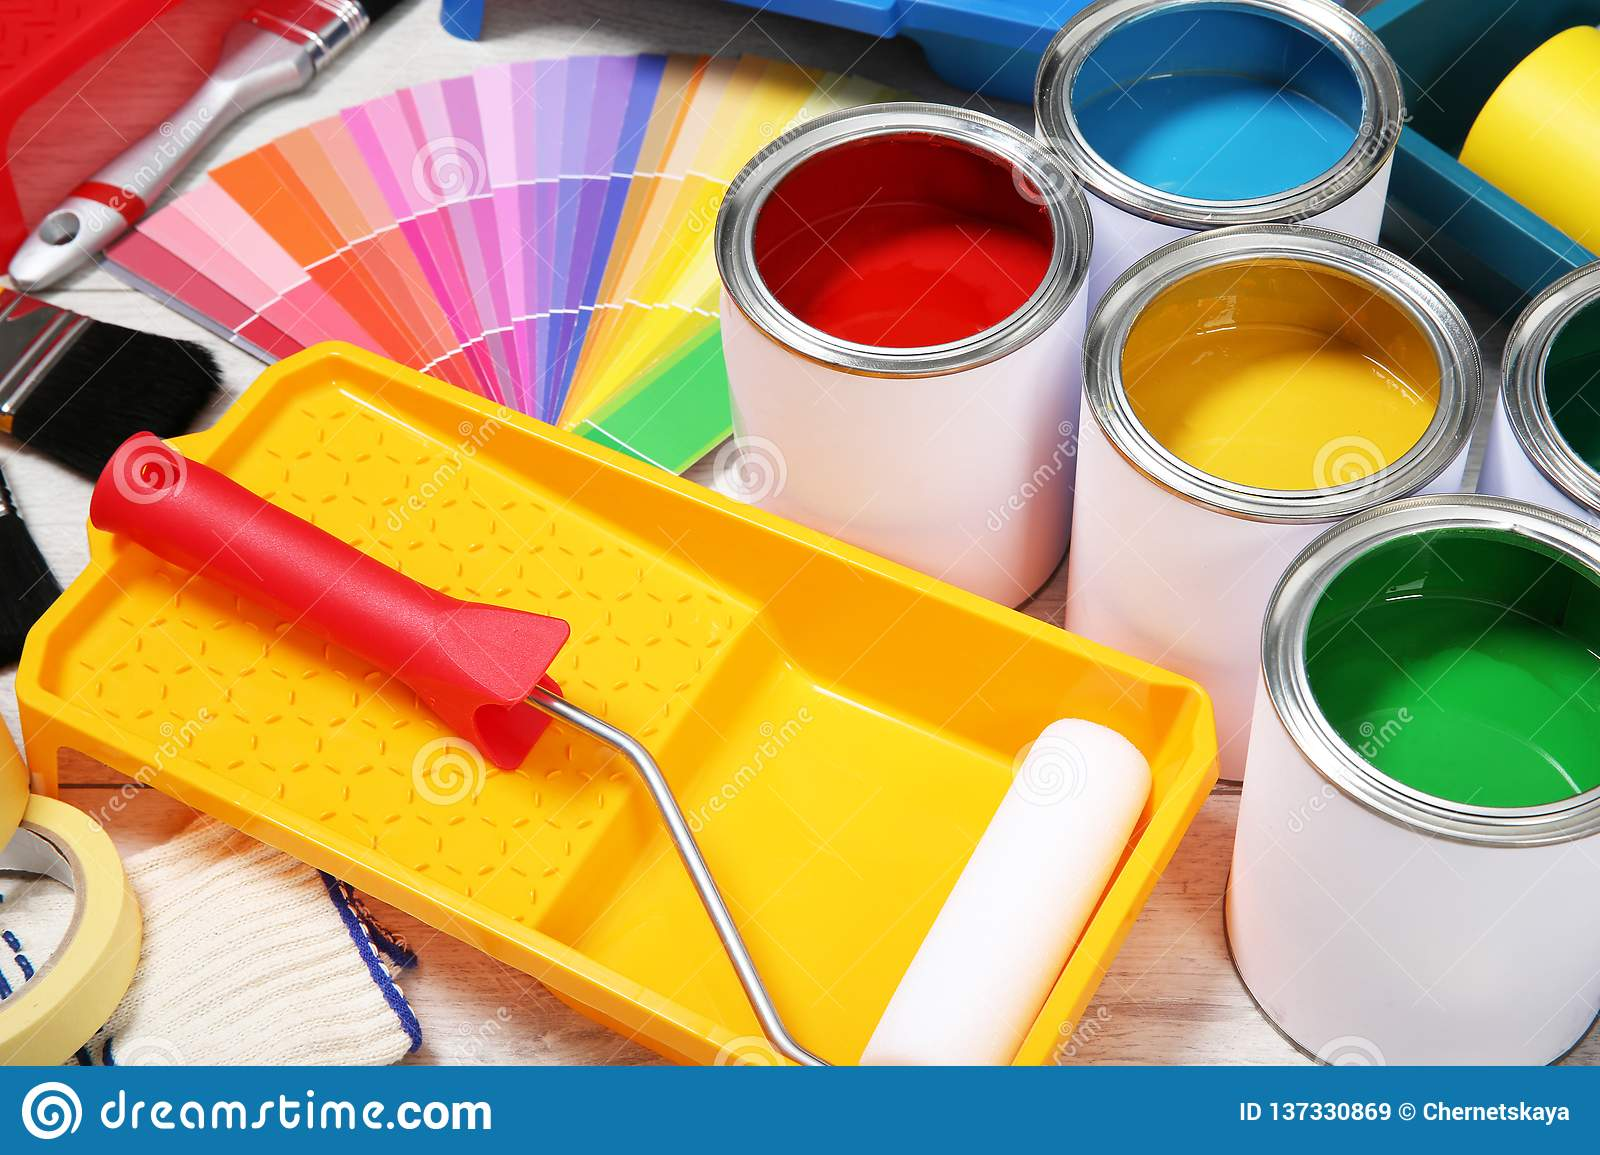 Cans of paint and decorator tools